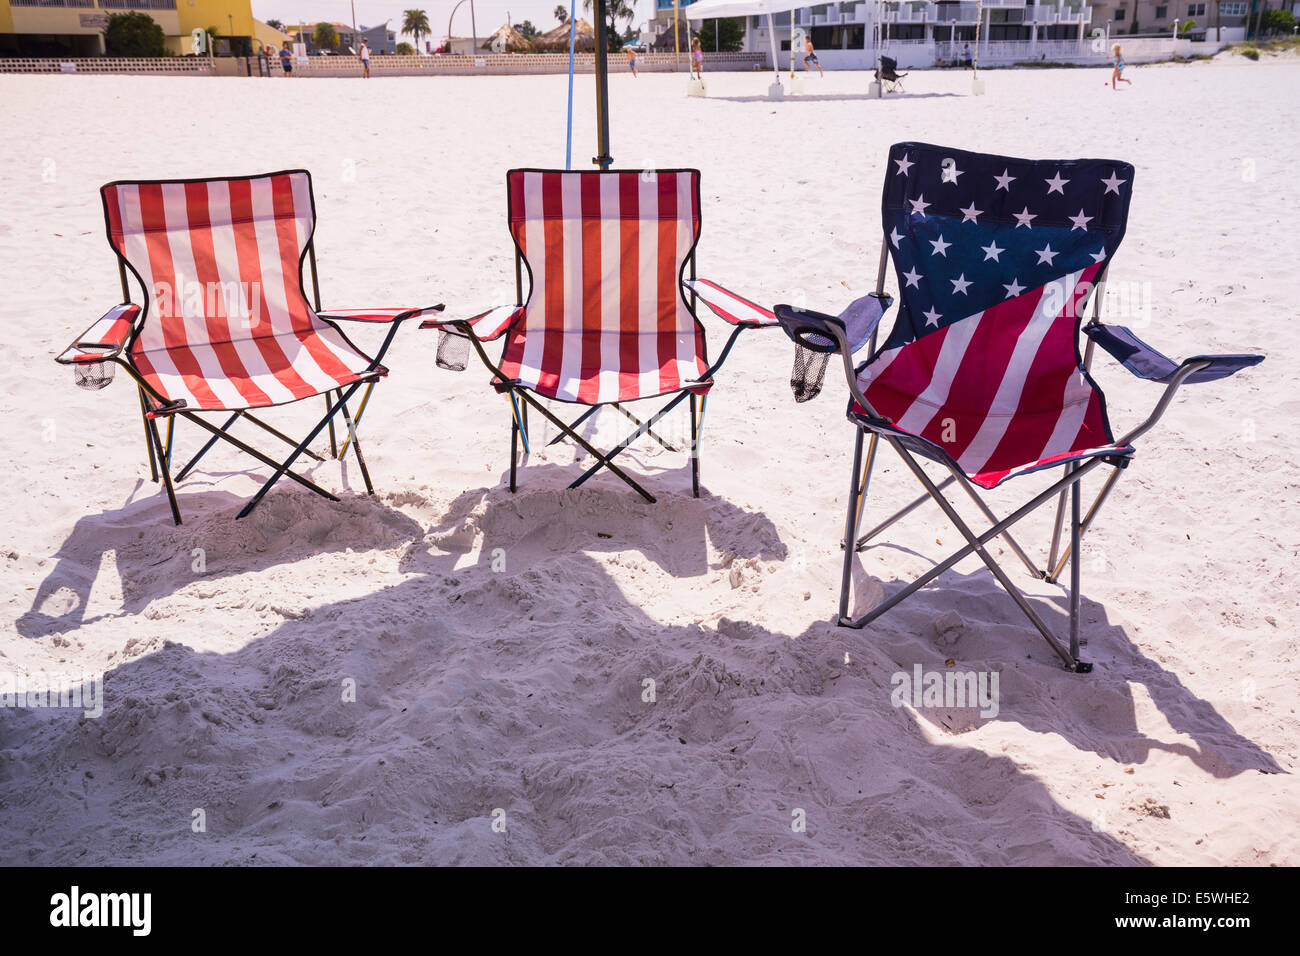 Three folding chairs on sandy beach in the design of US flag, USA - Stock Image